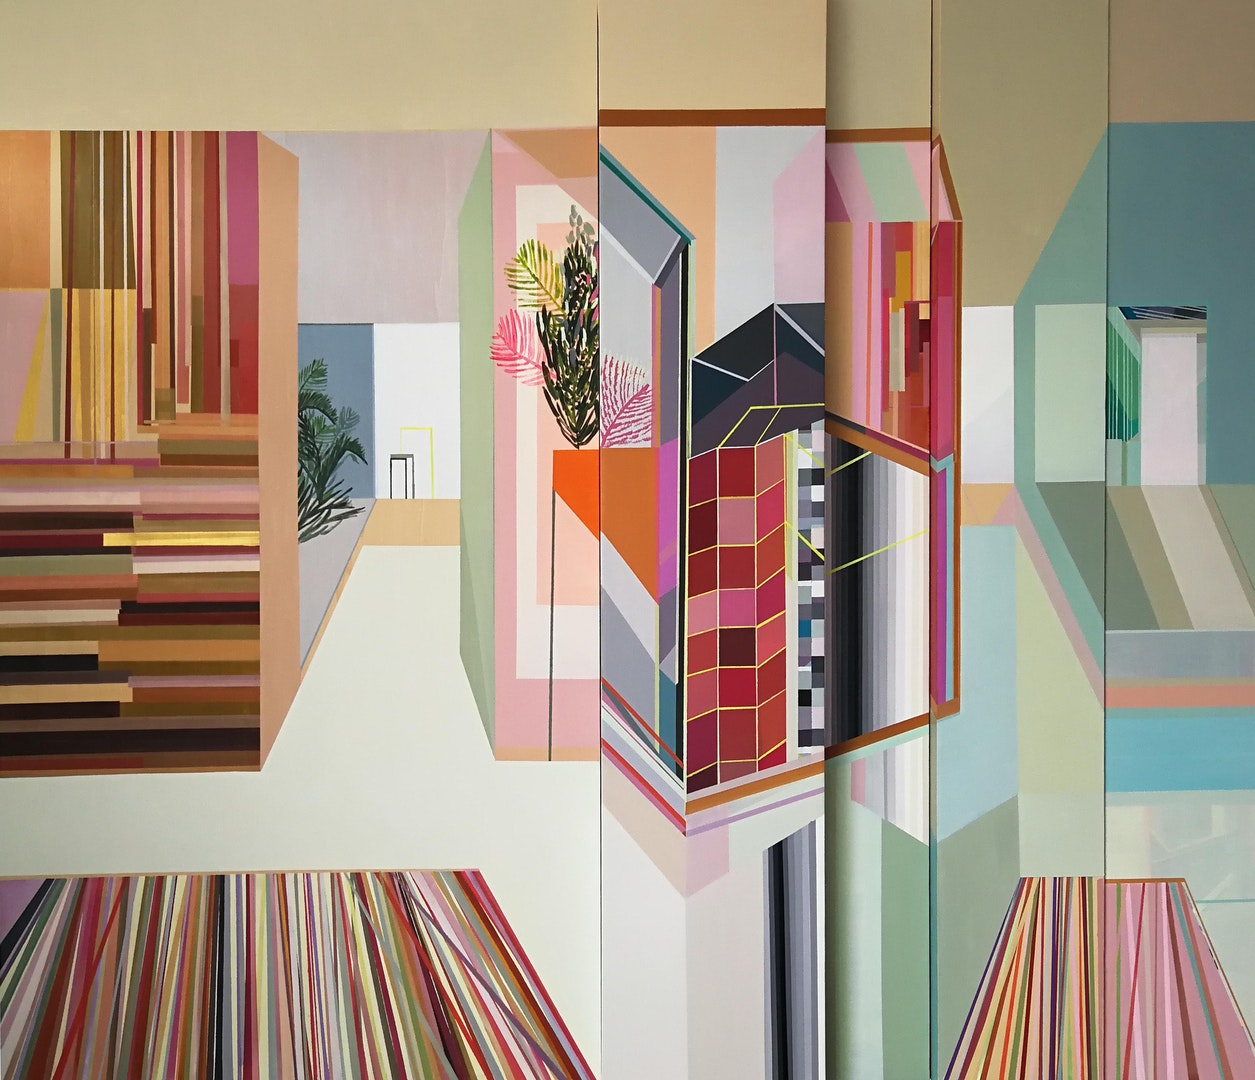 'Stay inside', Ana Pais Oliveira, Acrylic on canvas and maritime plywood, 200 x 230 x 12 cm